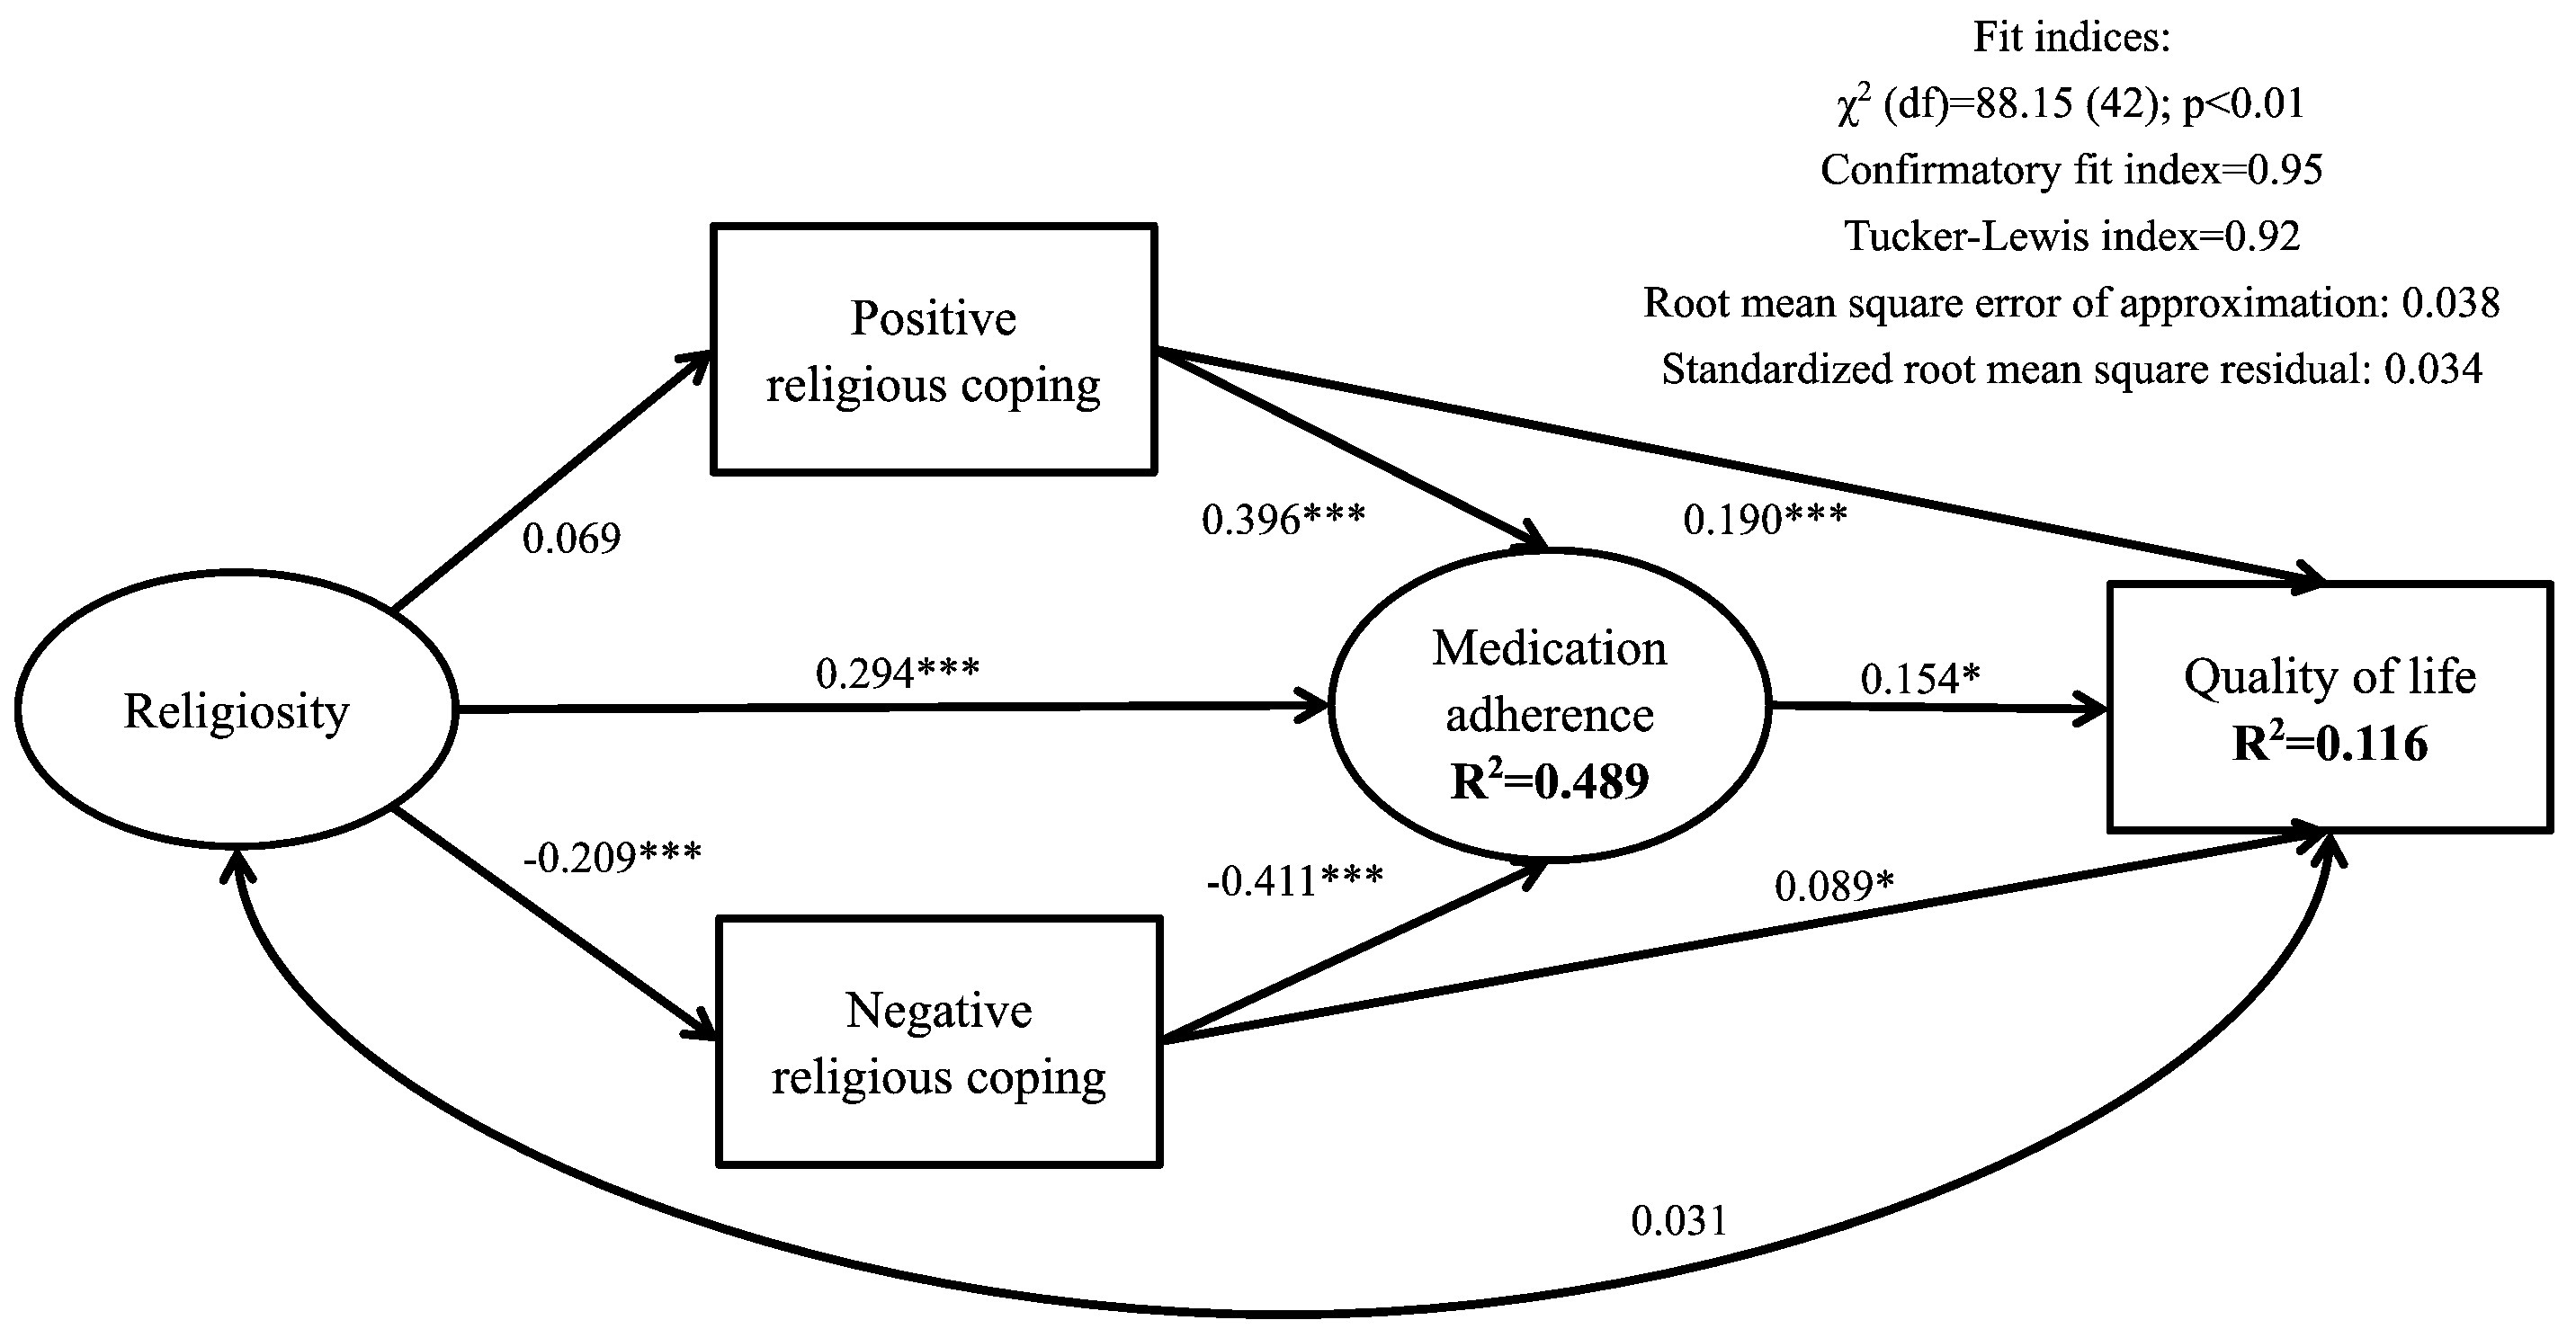 Effects of religiosity and religious coping on medication